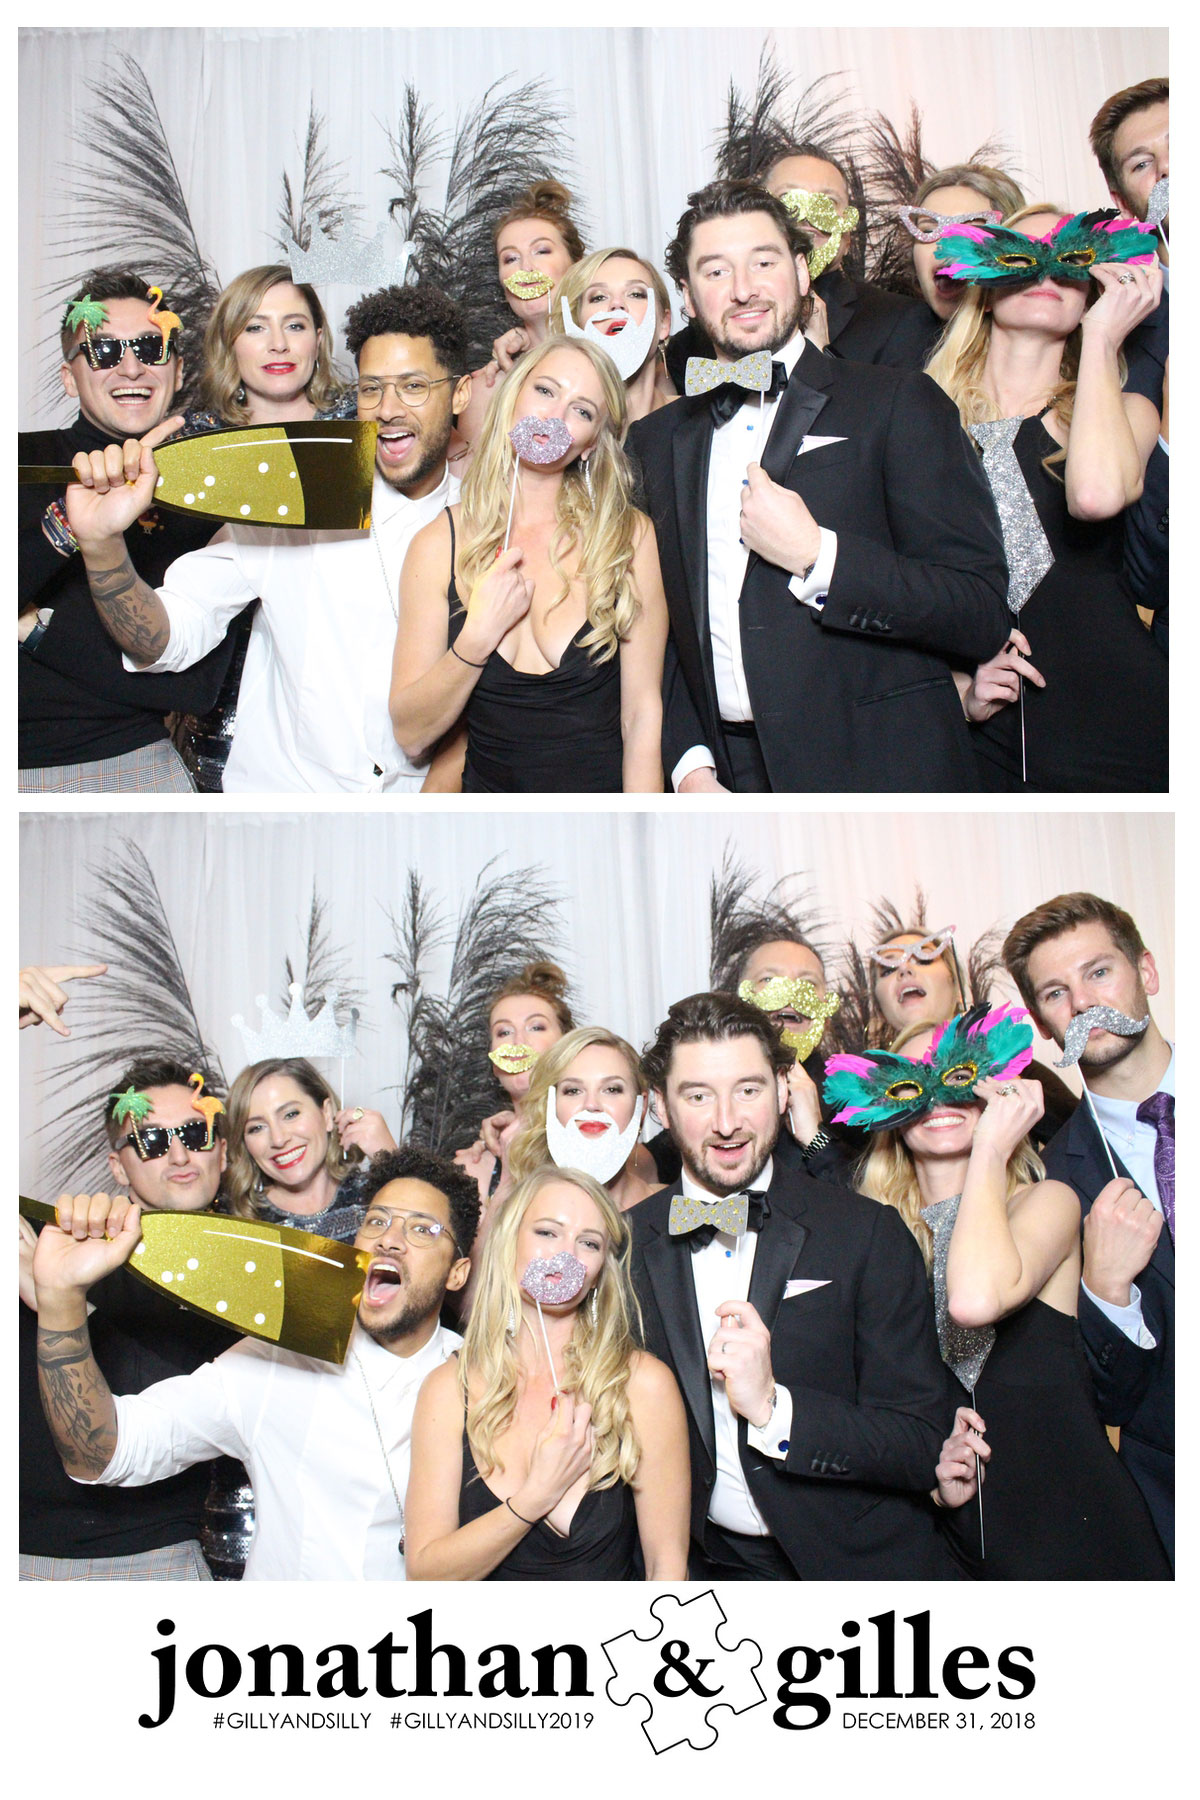 wedding event celebration photo booth